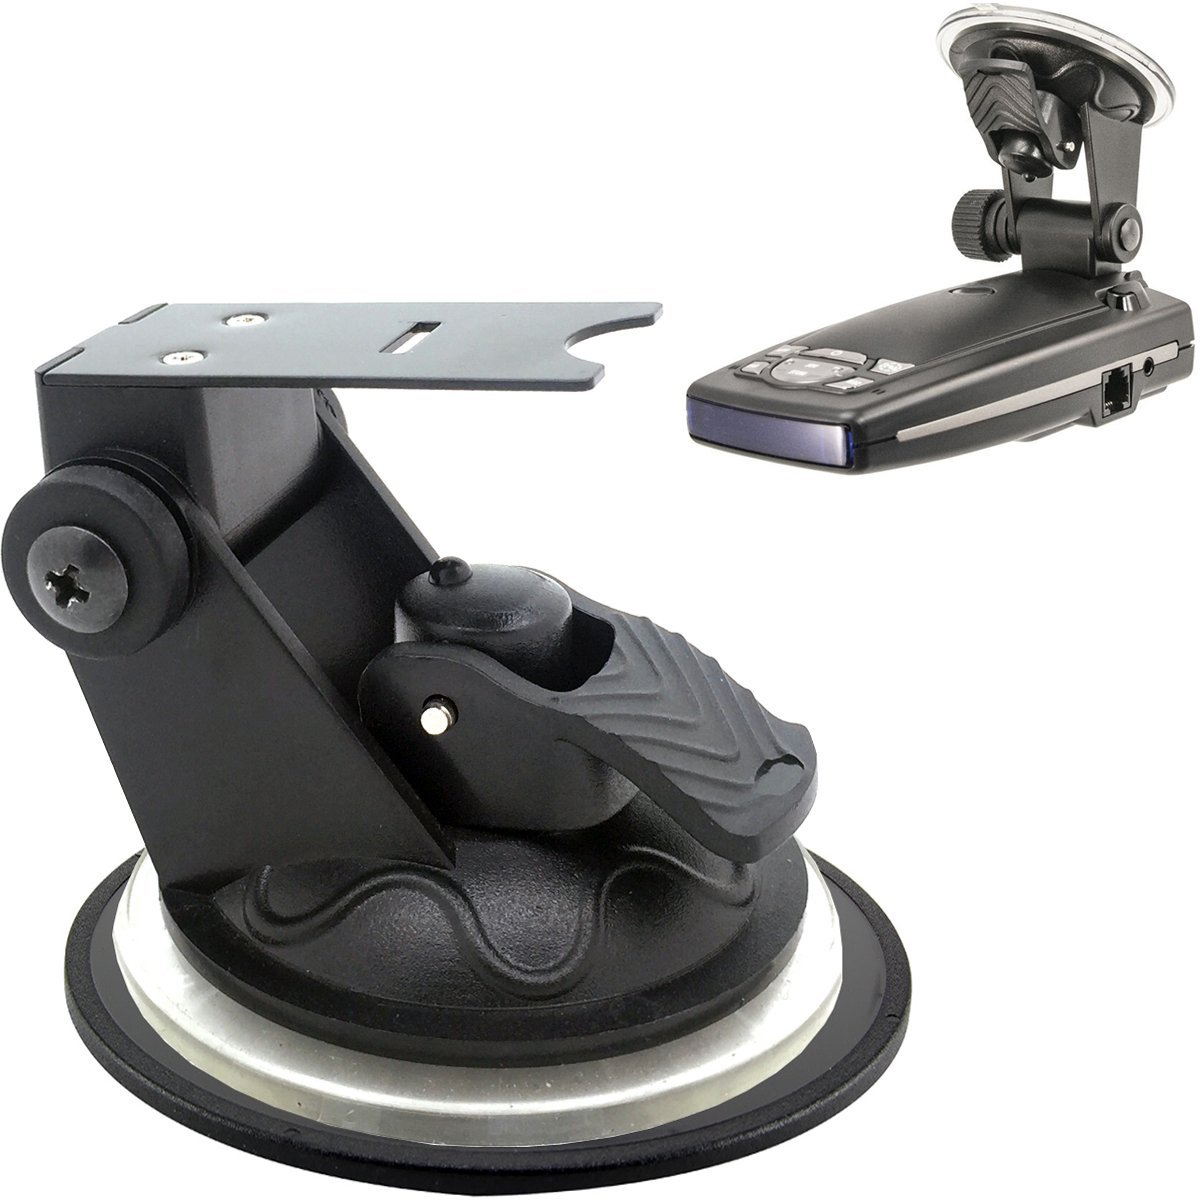 ChargerCity Car Dashboard & Windshield Suction Cup Mount Holder for Escort Passport 9500ix 9500i 8500 8500x50 S55 S75g Solo S2 S3 and Beltronics GX65 RX65 Vector 975 Radar Detectors ... by ChargerCity